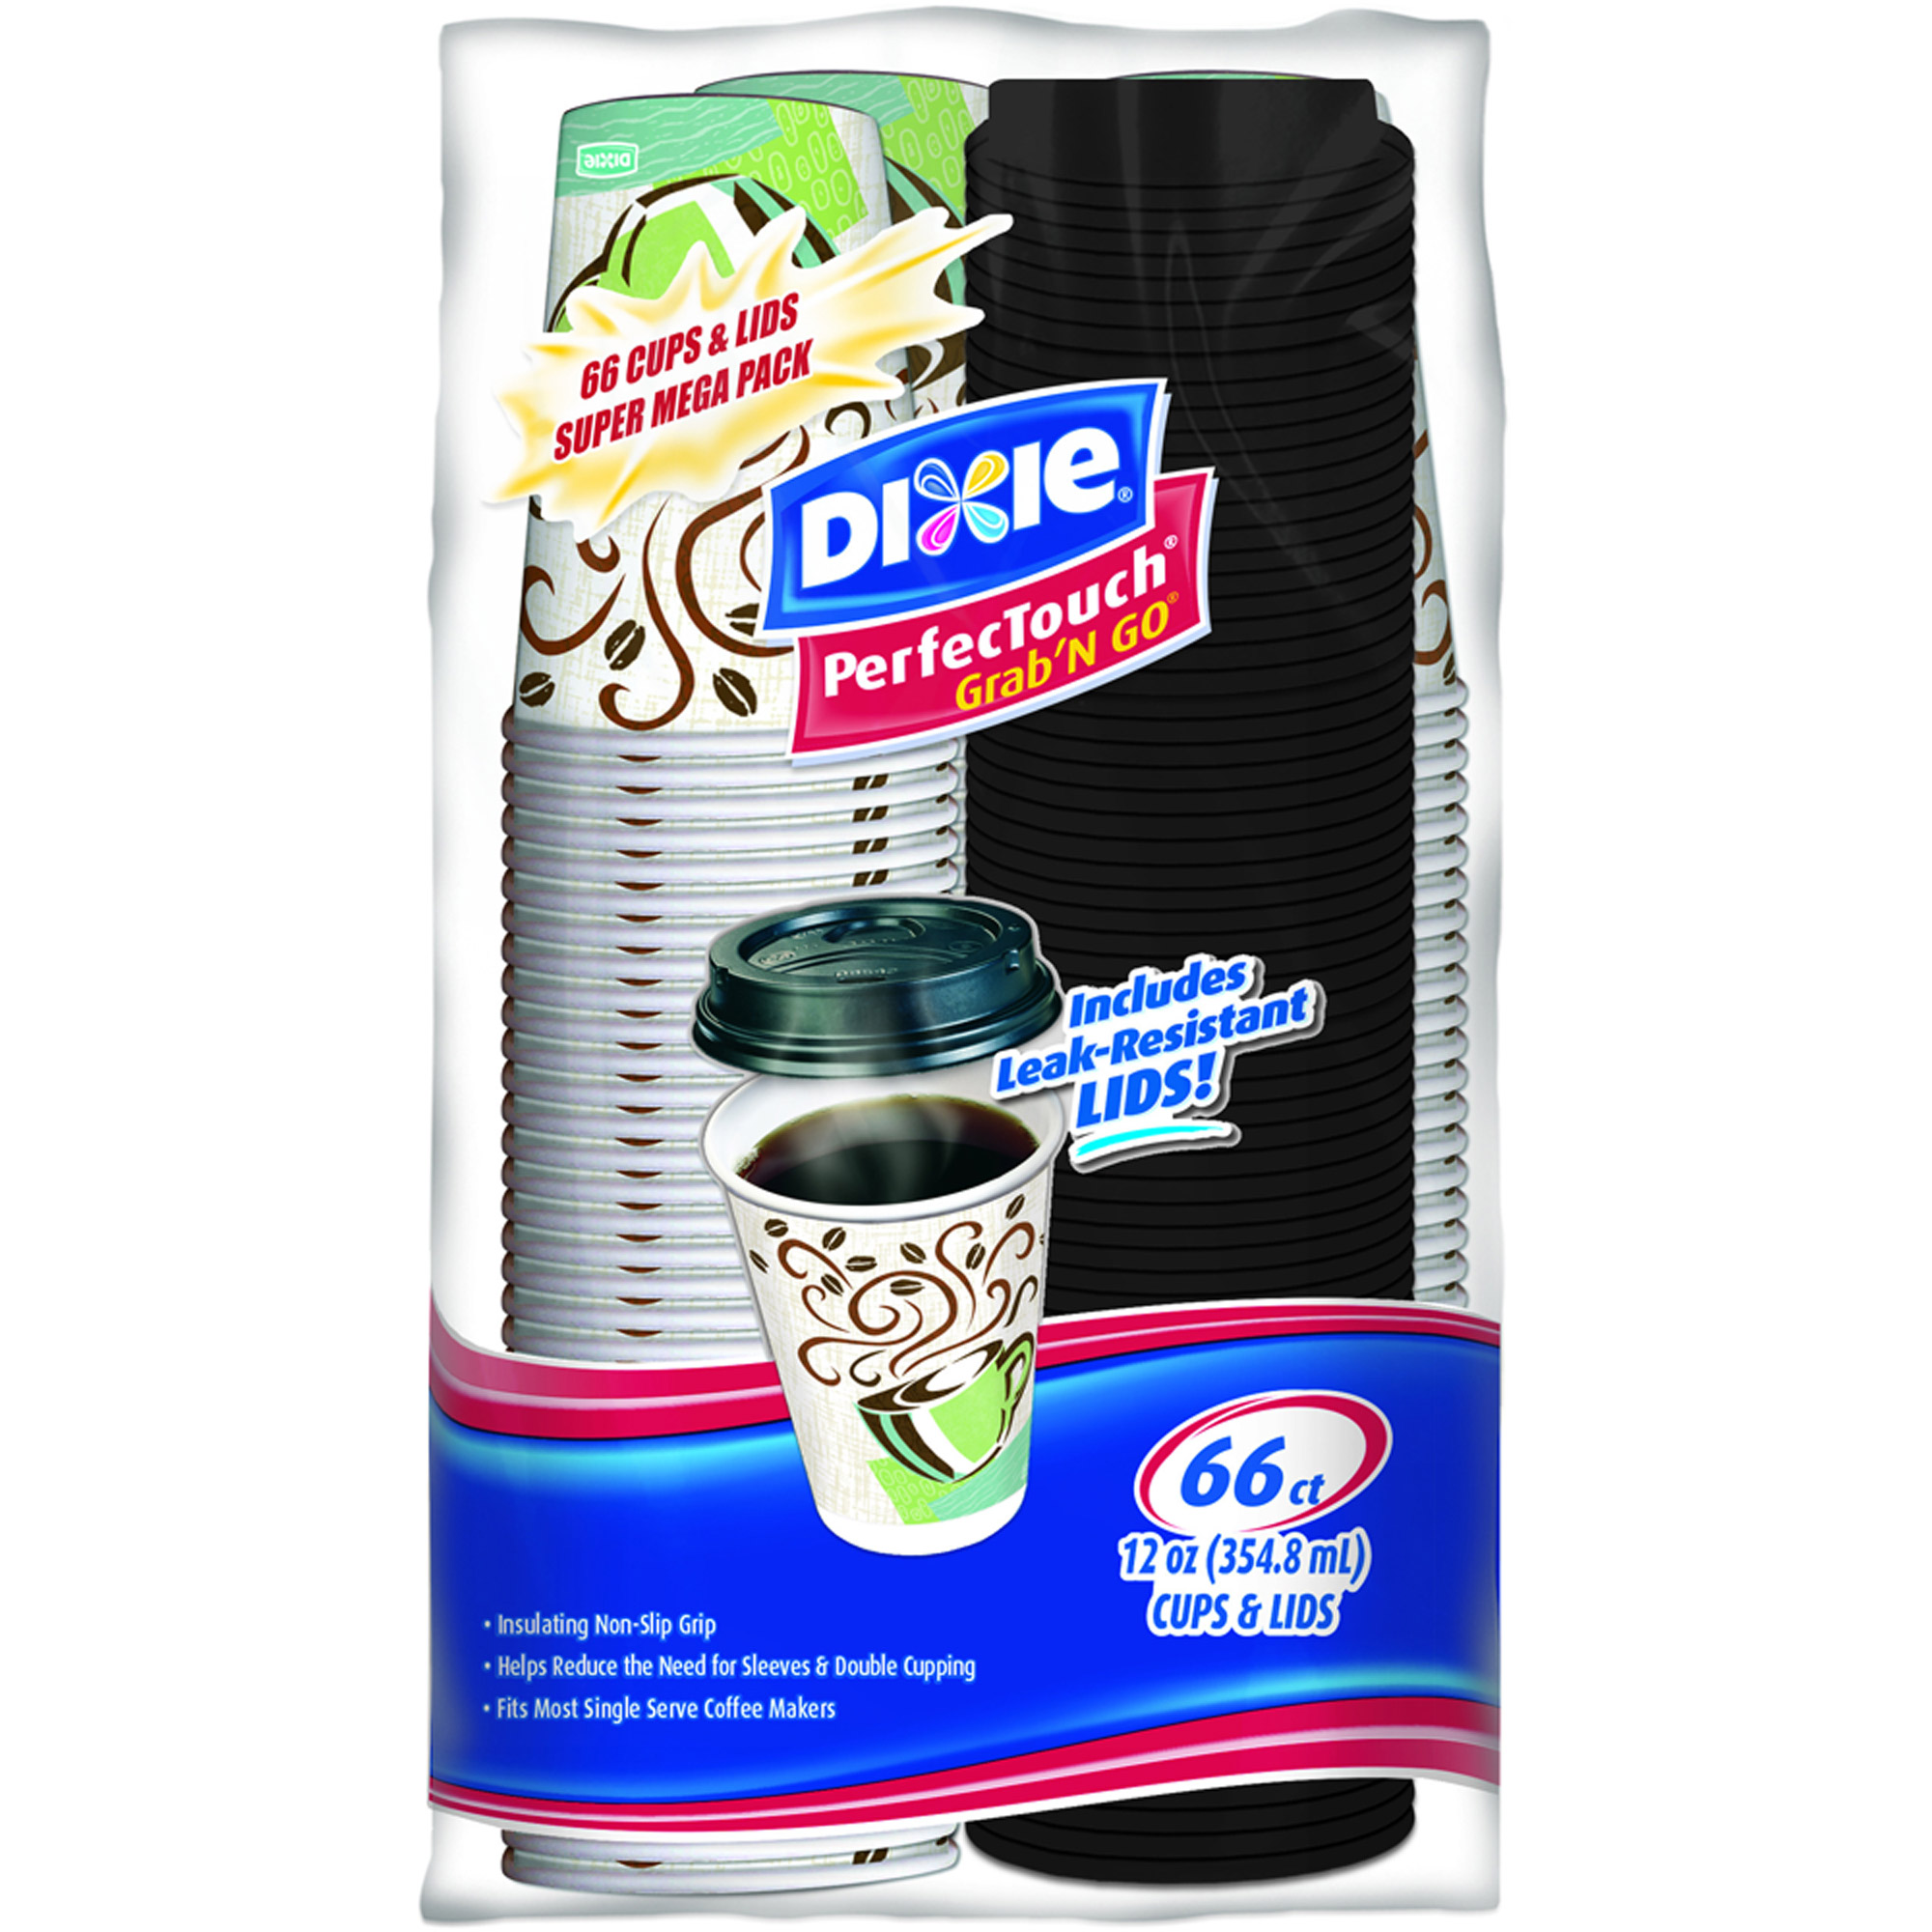 Dixie PerfecTouch Grab 'N Go Cups & Lids, 12 oz, 66 count